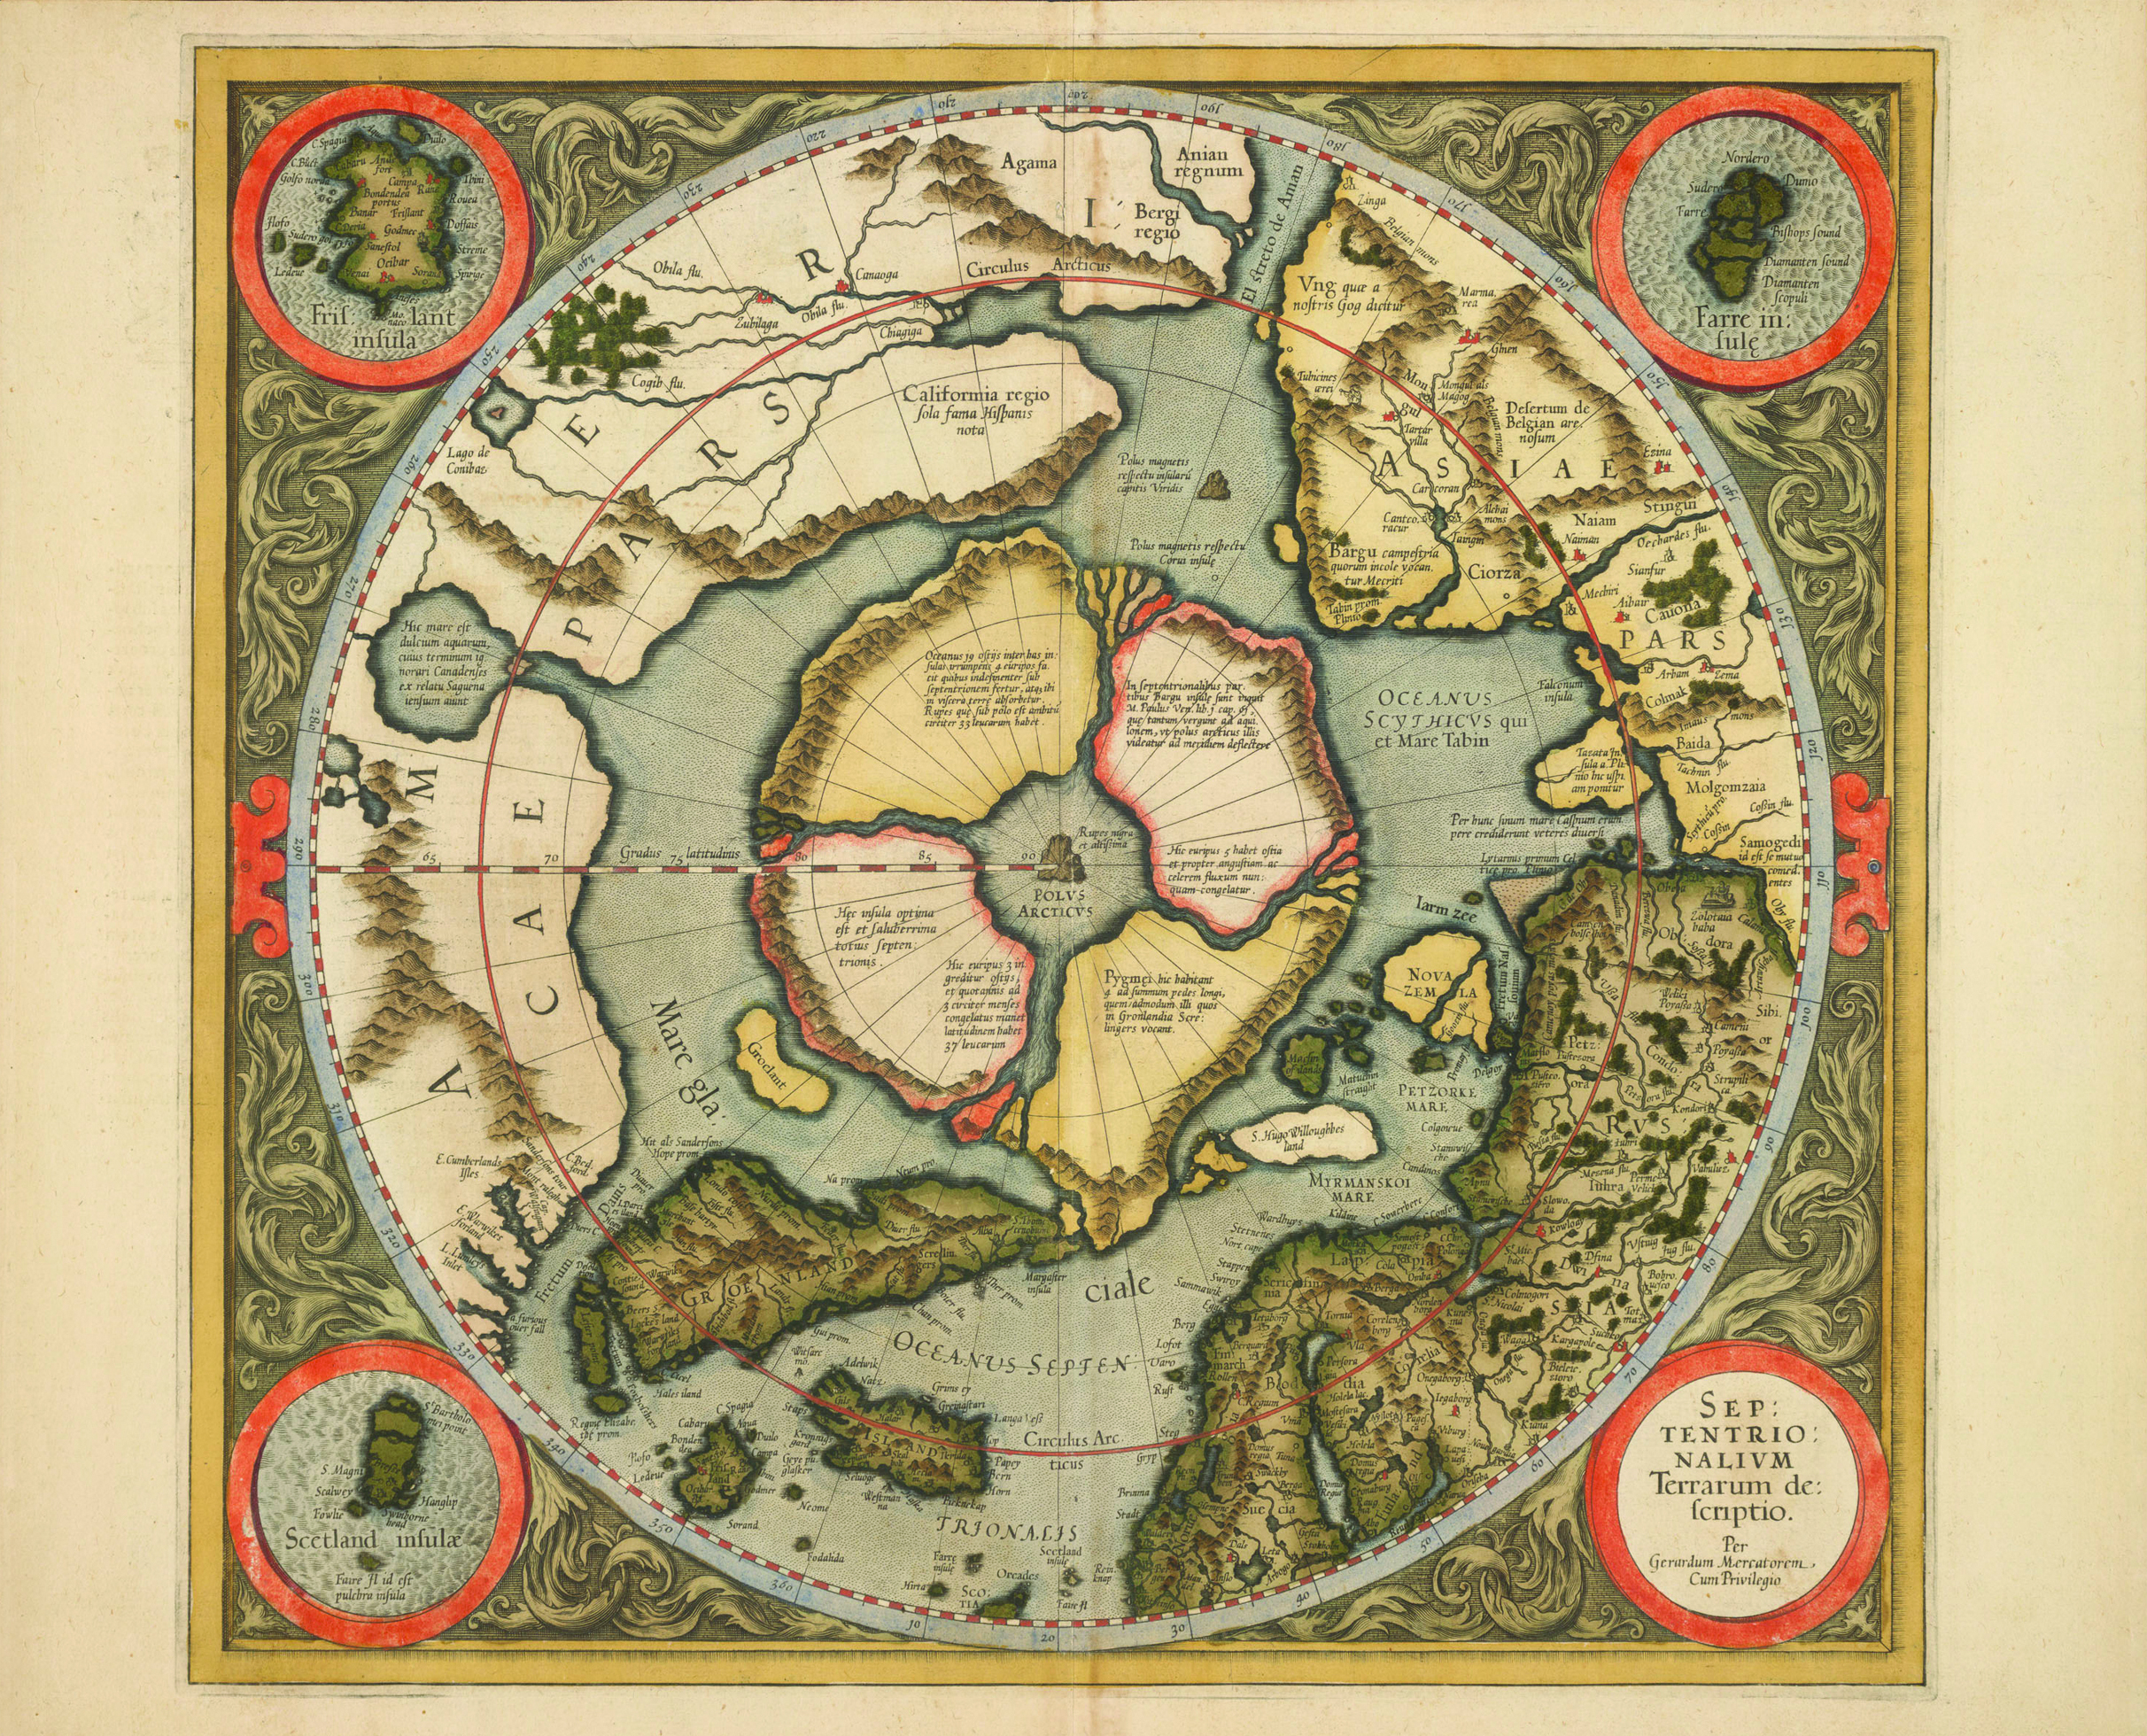 Image 7: Gerardus Mercator's 1595 polar projection depicting a magnetic mountain at the North Pole. (Map courtesy Library and Archives Canada, Mikan no. 3682241)